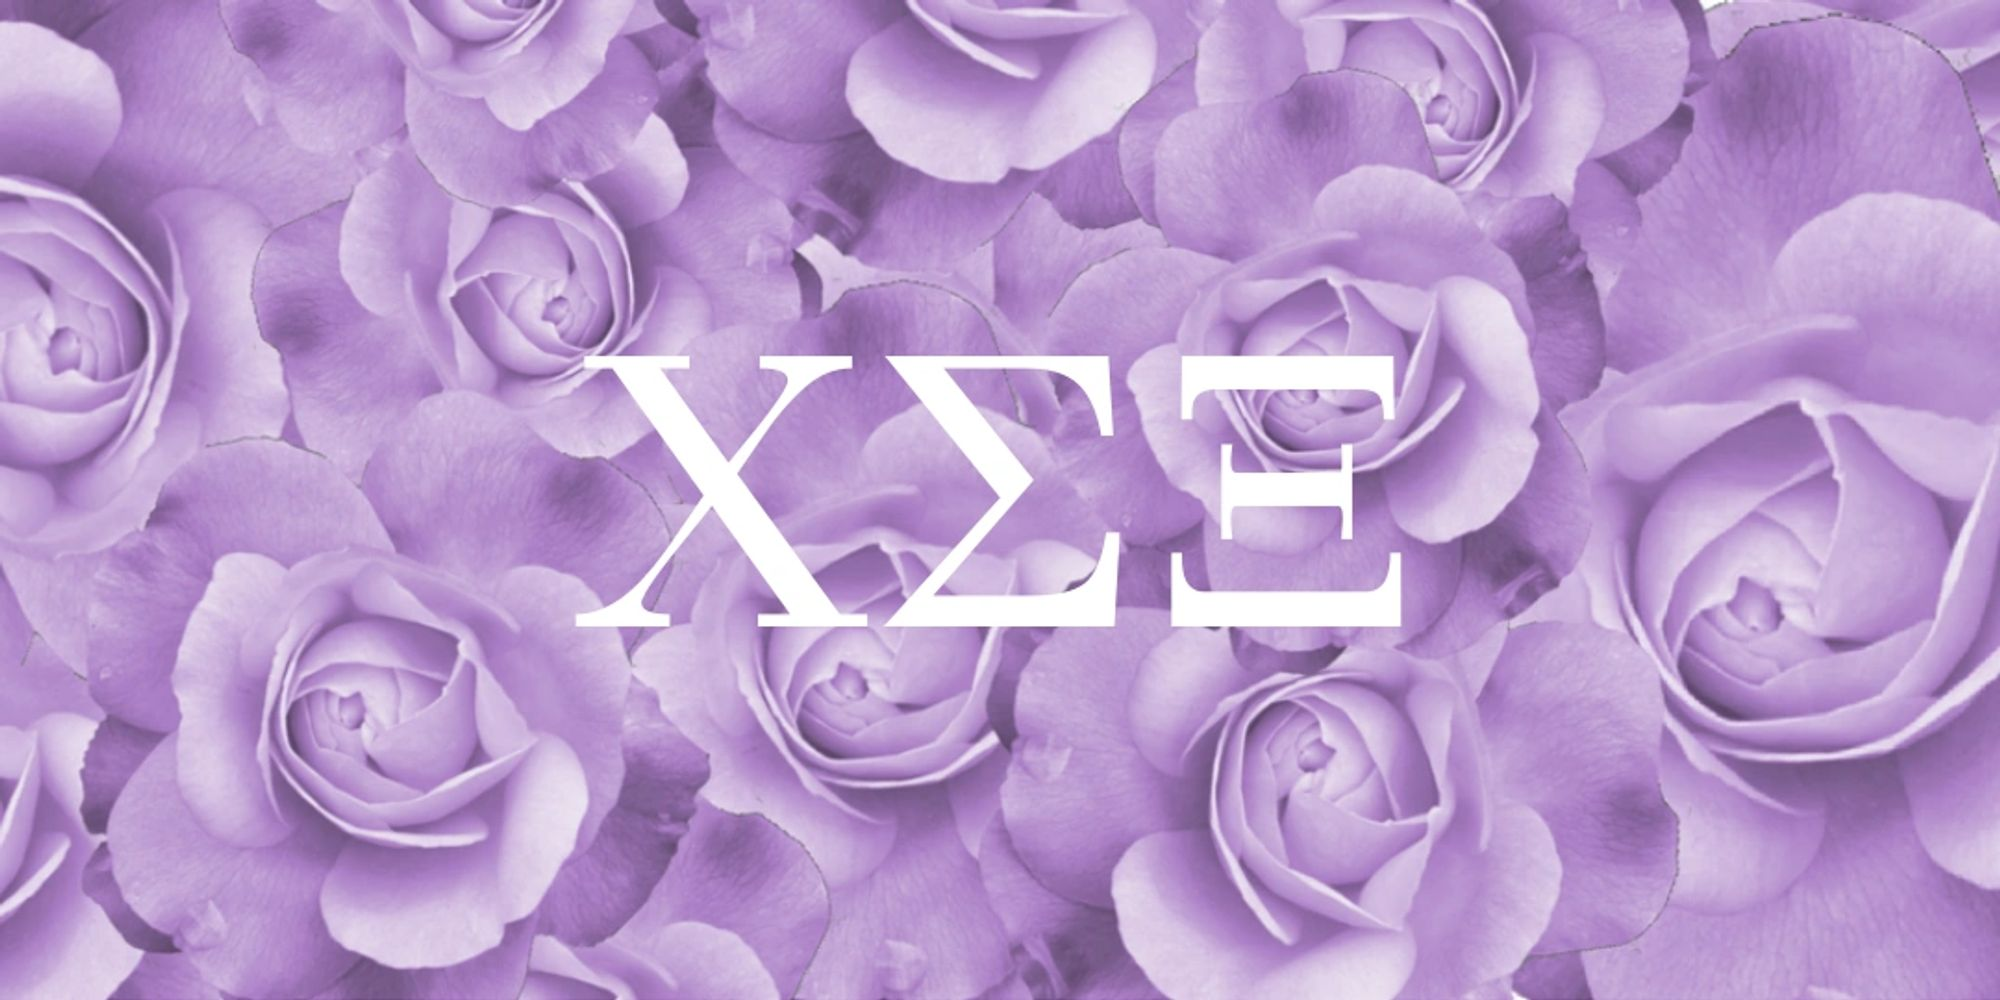 "Purple rose floral background with capital greek letters ""Chi Sigma Xi"" in white."